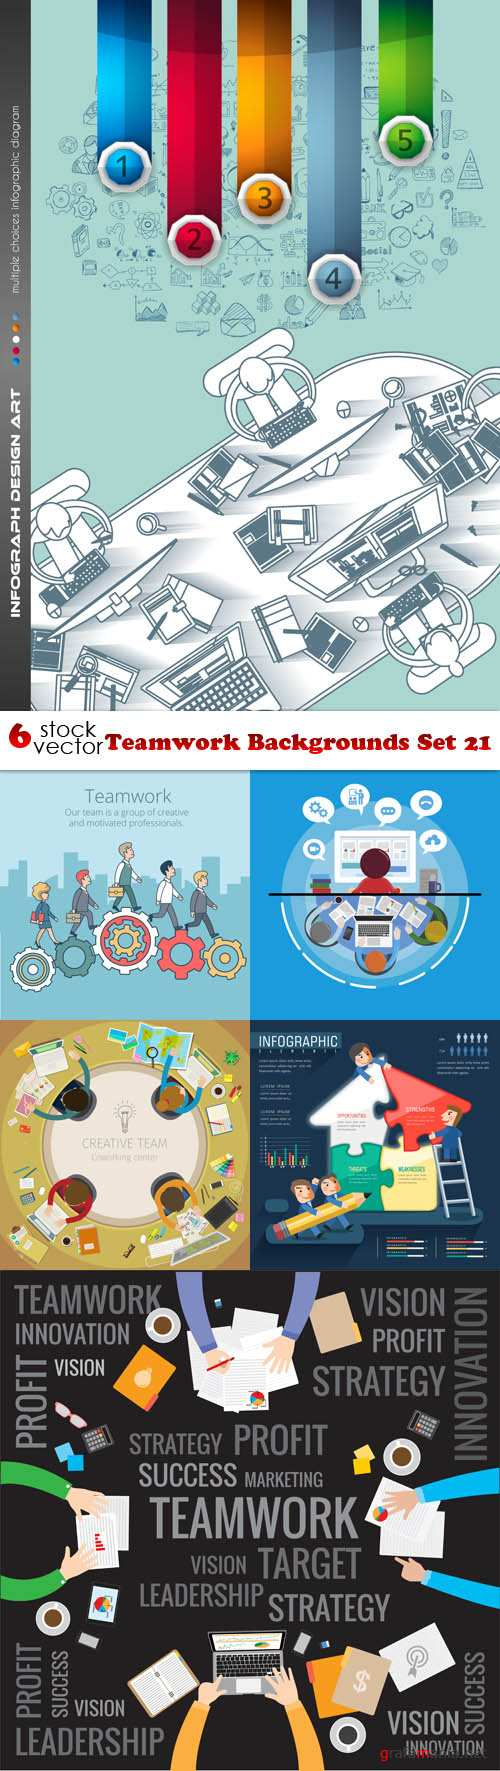 Vectors - Teamwork Backgrounds Set 21